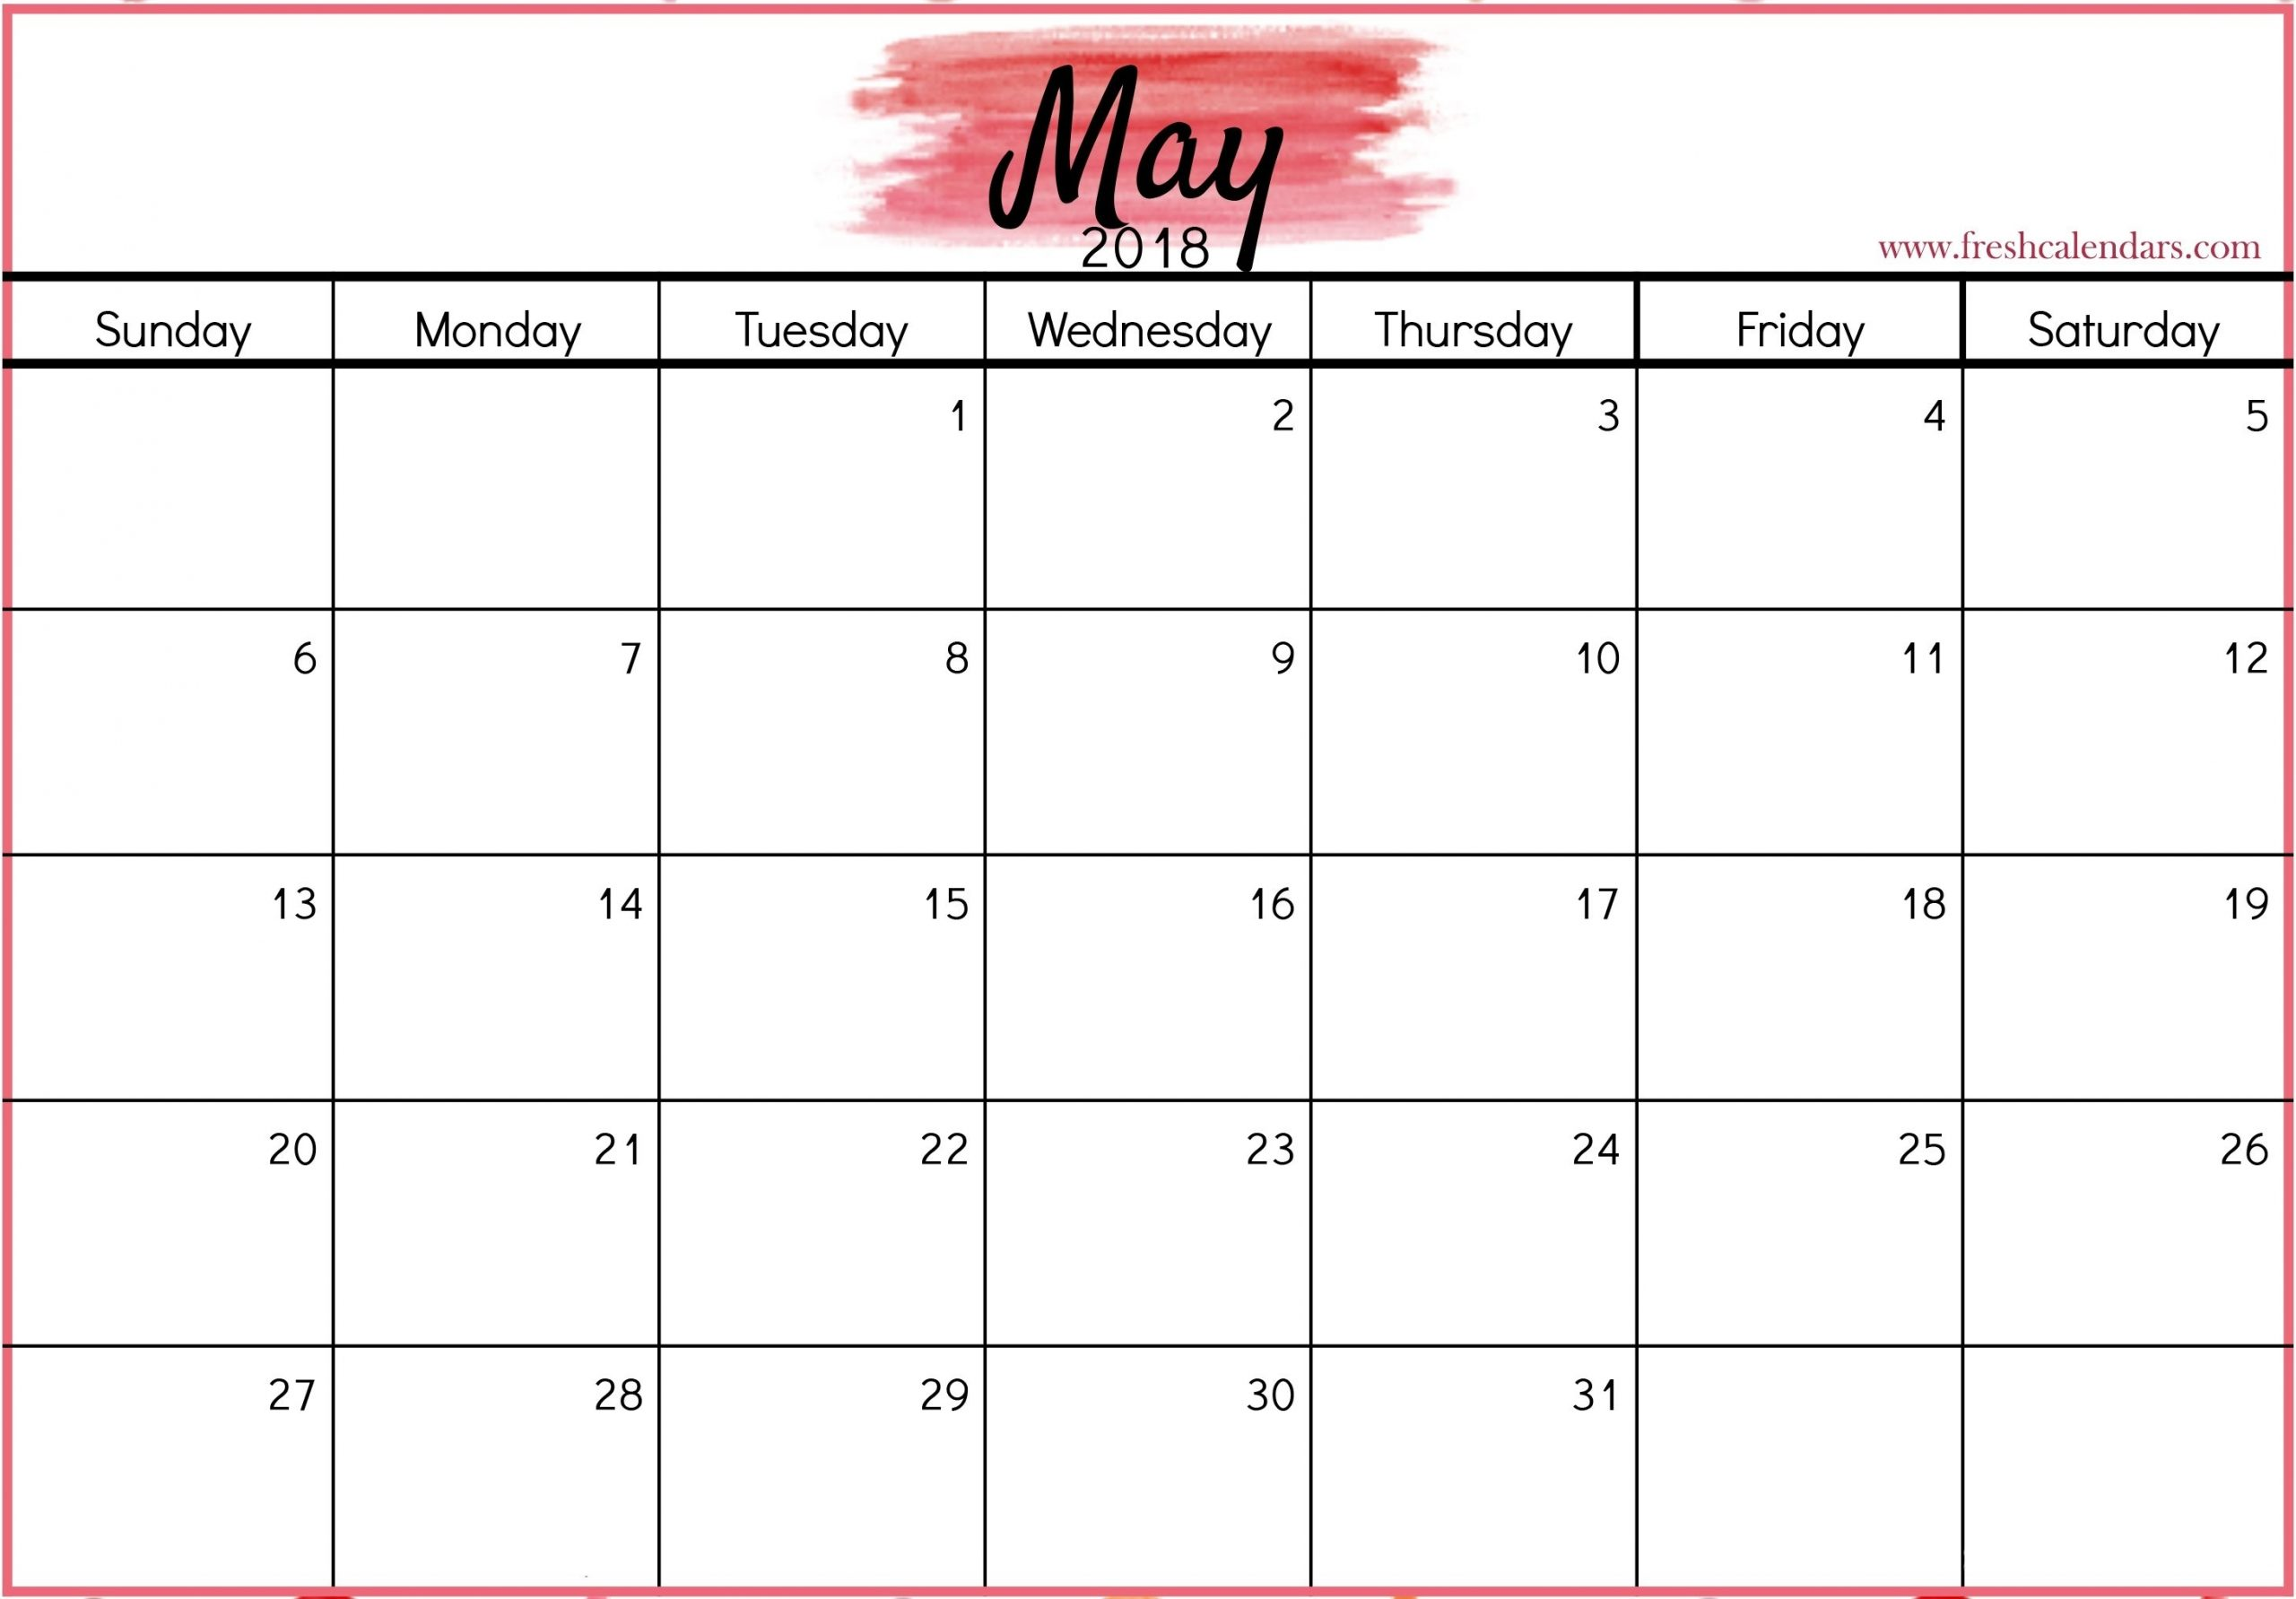 Want To Print Or Download A May 2018 Calendar Pink Color? Here You Can Download Or Print